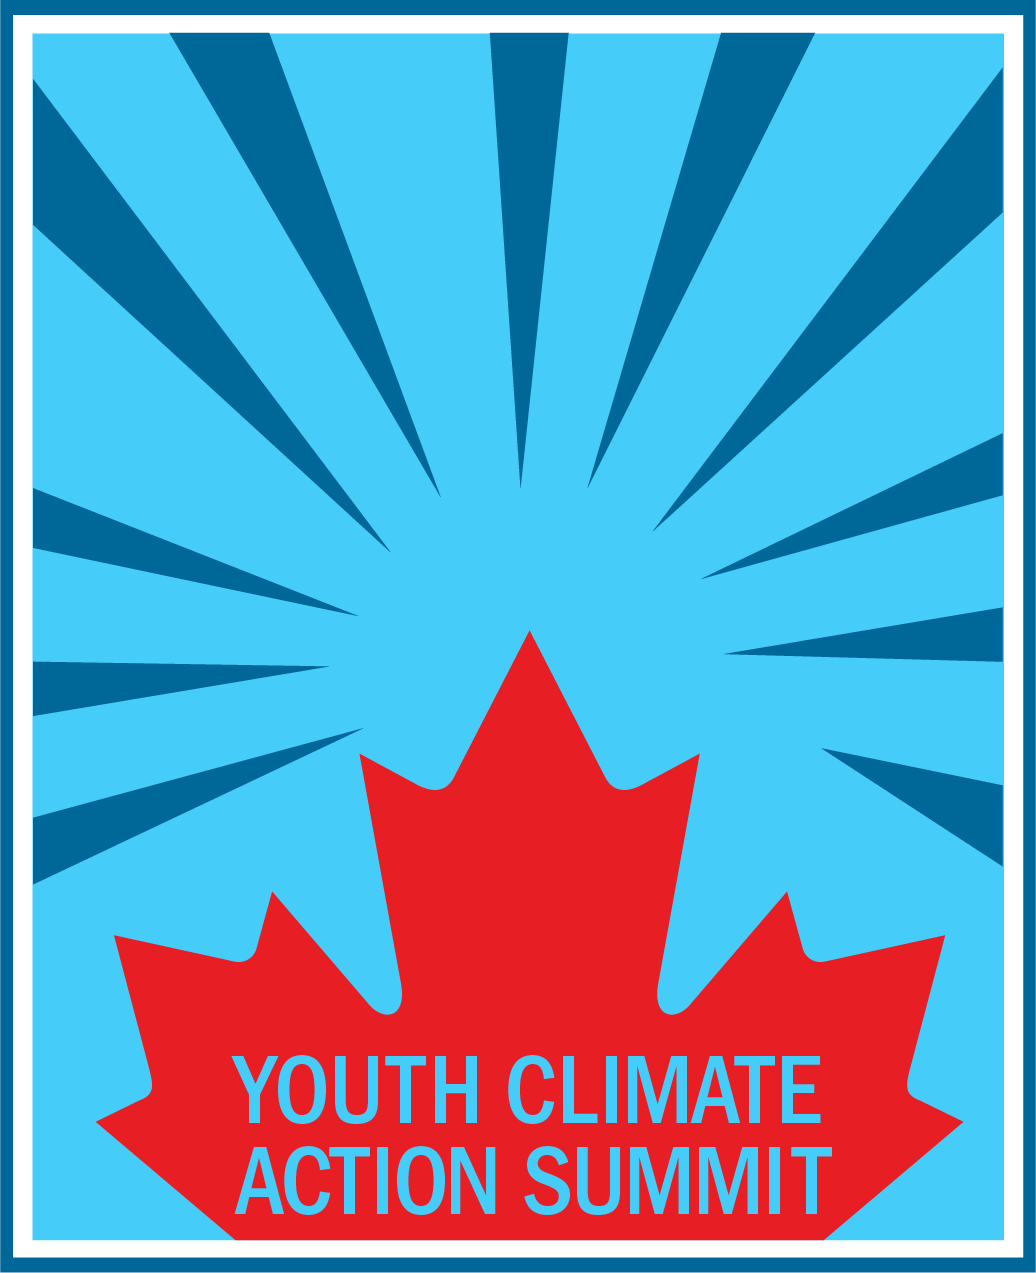 youthclimateactionsummit